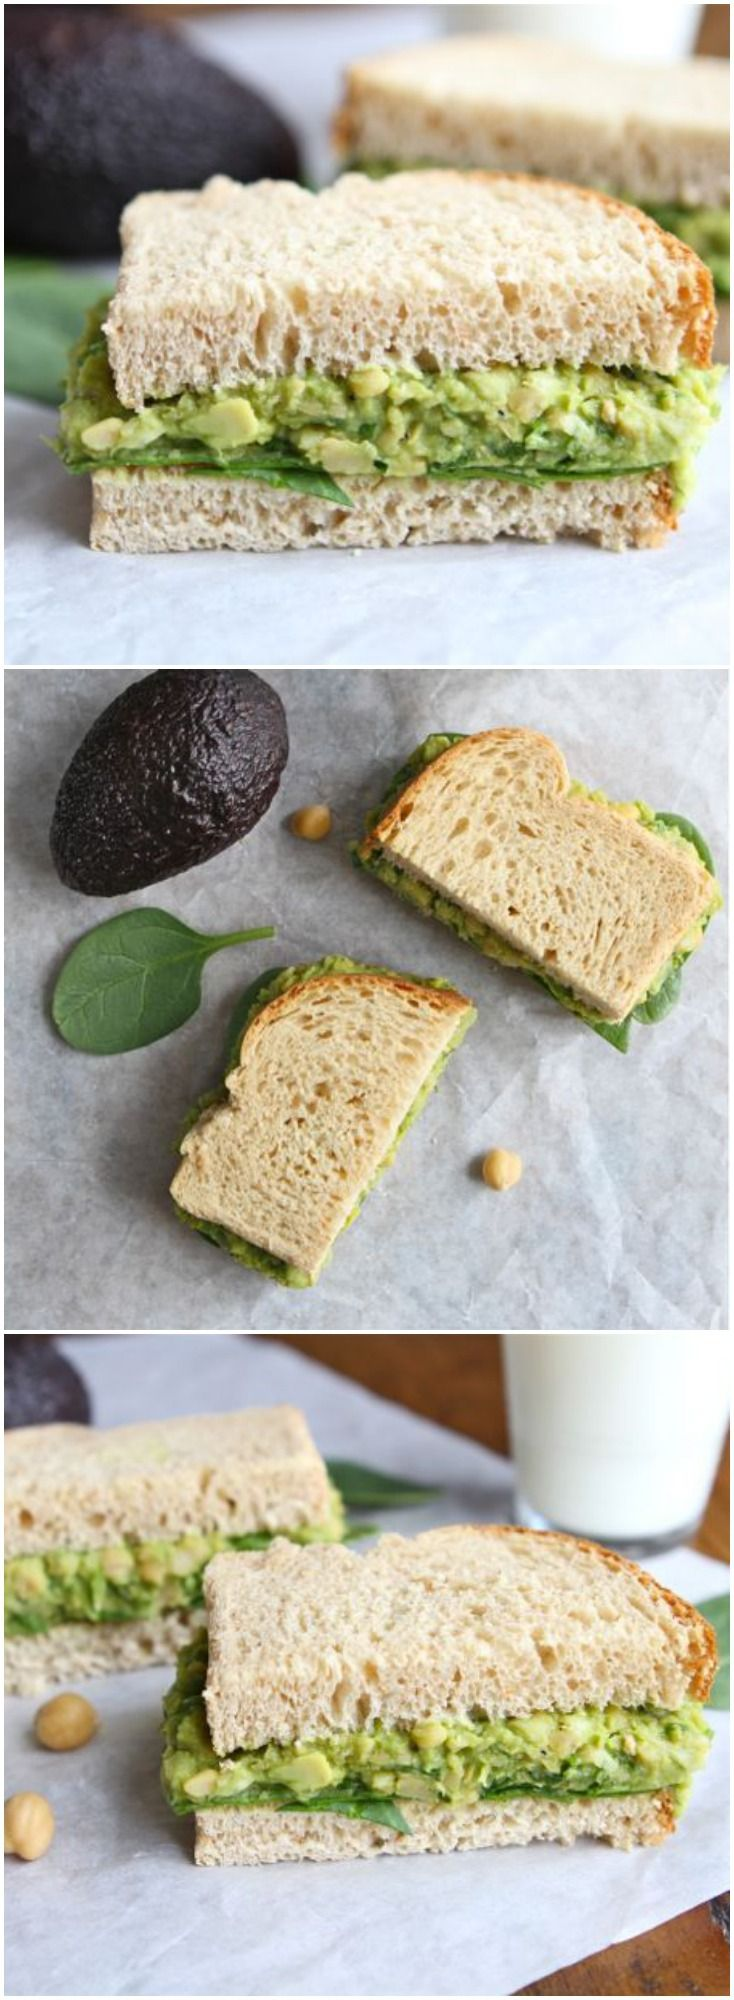 Smashed Chickpea and Avocado Salad Sandwich Recipe